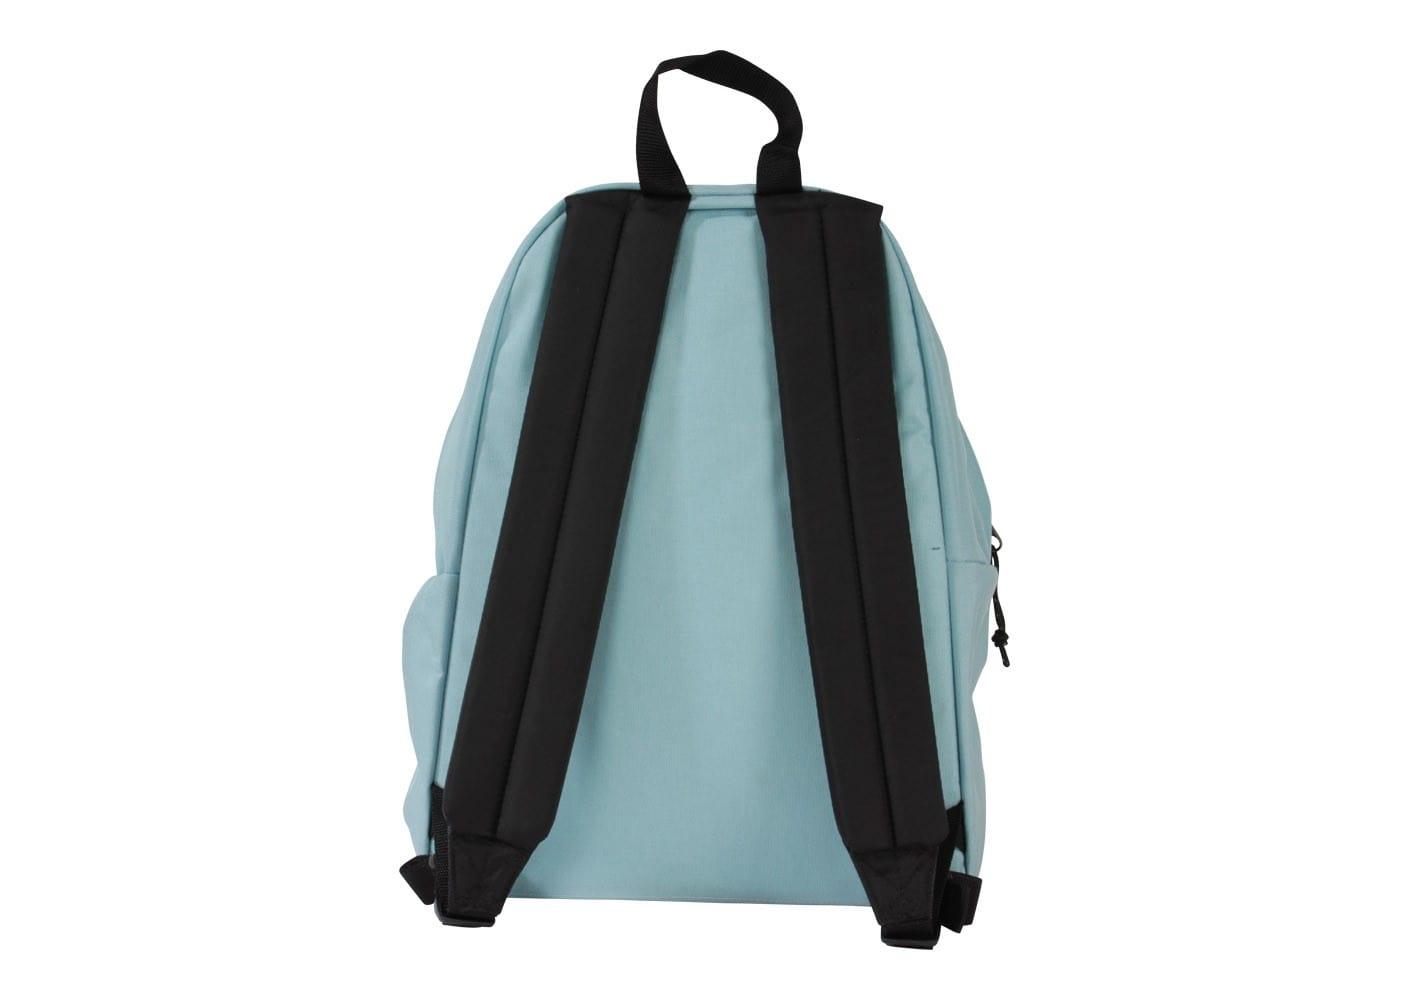 eastpak sac dos padded pak 39 r bleu ciel sacs sacoches chausport. Black Bedroom Furniture Sets. Home Design Ideas